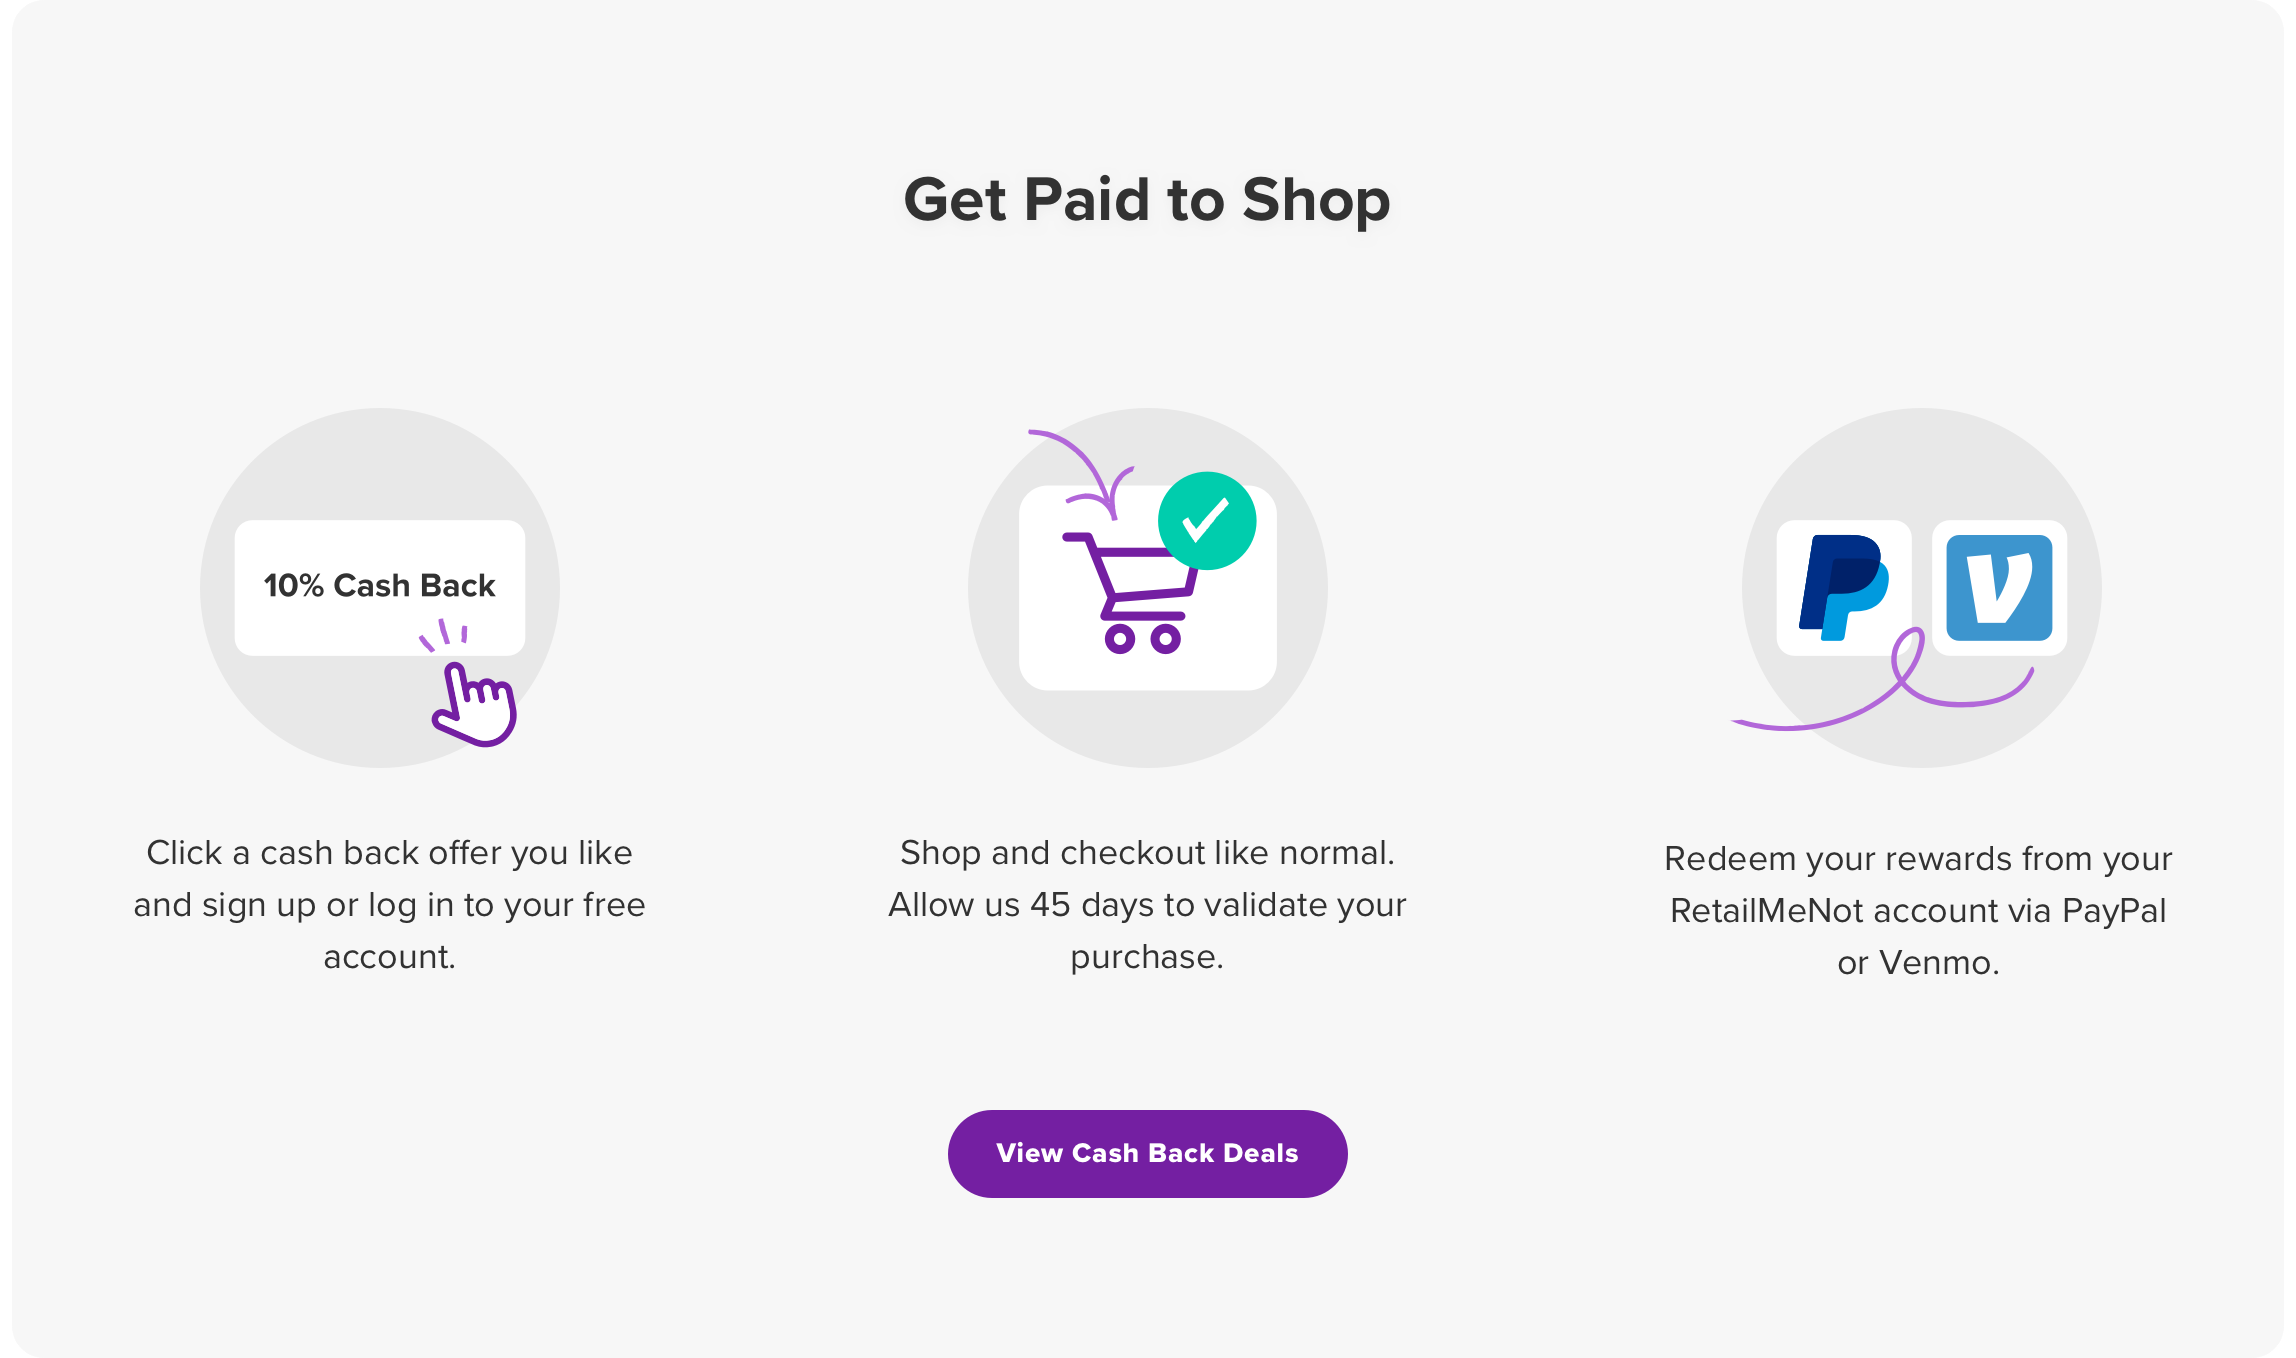 Get Paid to Shop  Click a cash back offer you like and sign up or log in to your free account. Shop and checkout like normal. Allow us 45 days to validate your purchase. Redeem your rewards from your RetailMeNot account via PayPal or Venmo. View Deals